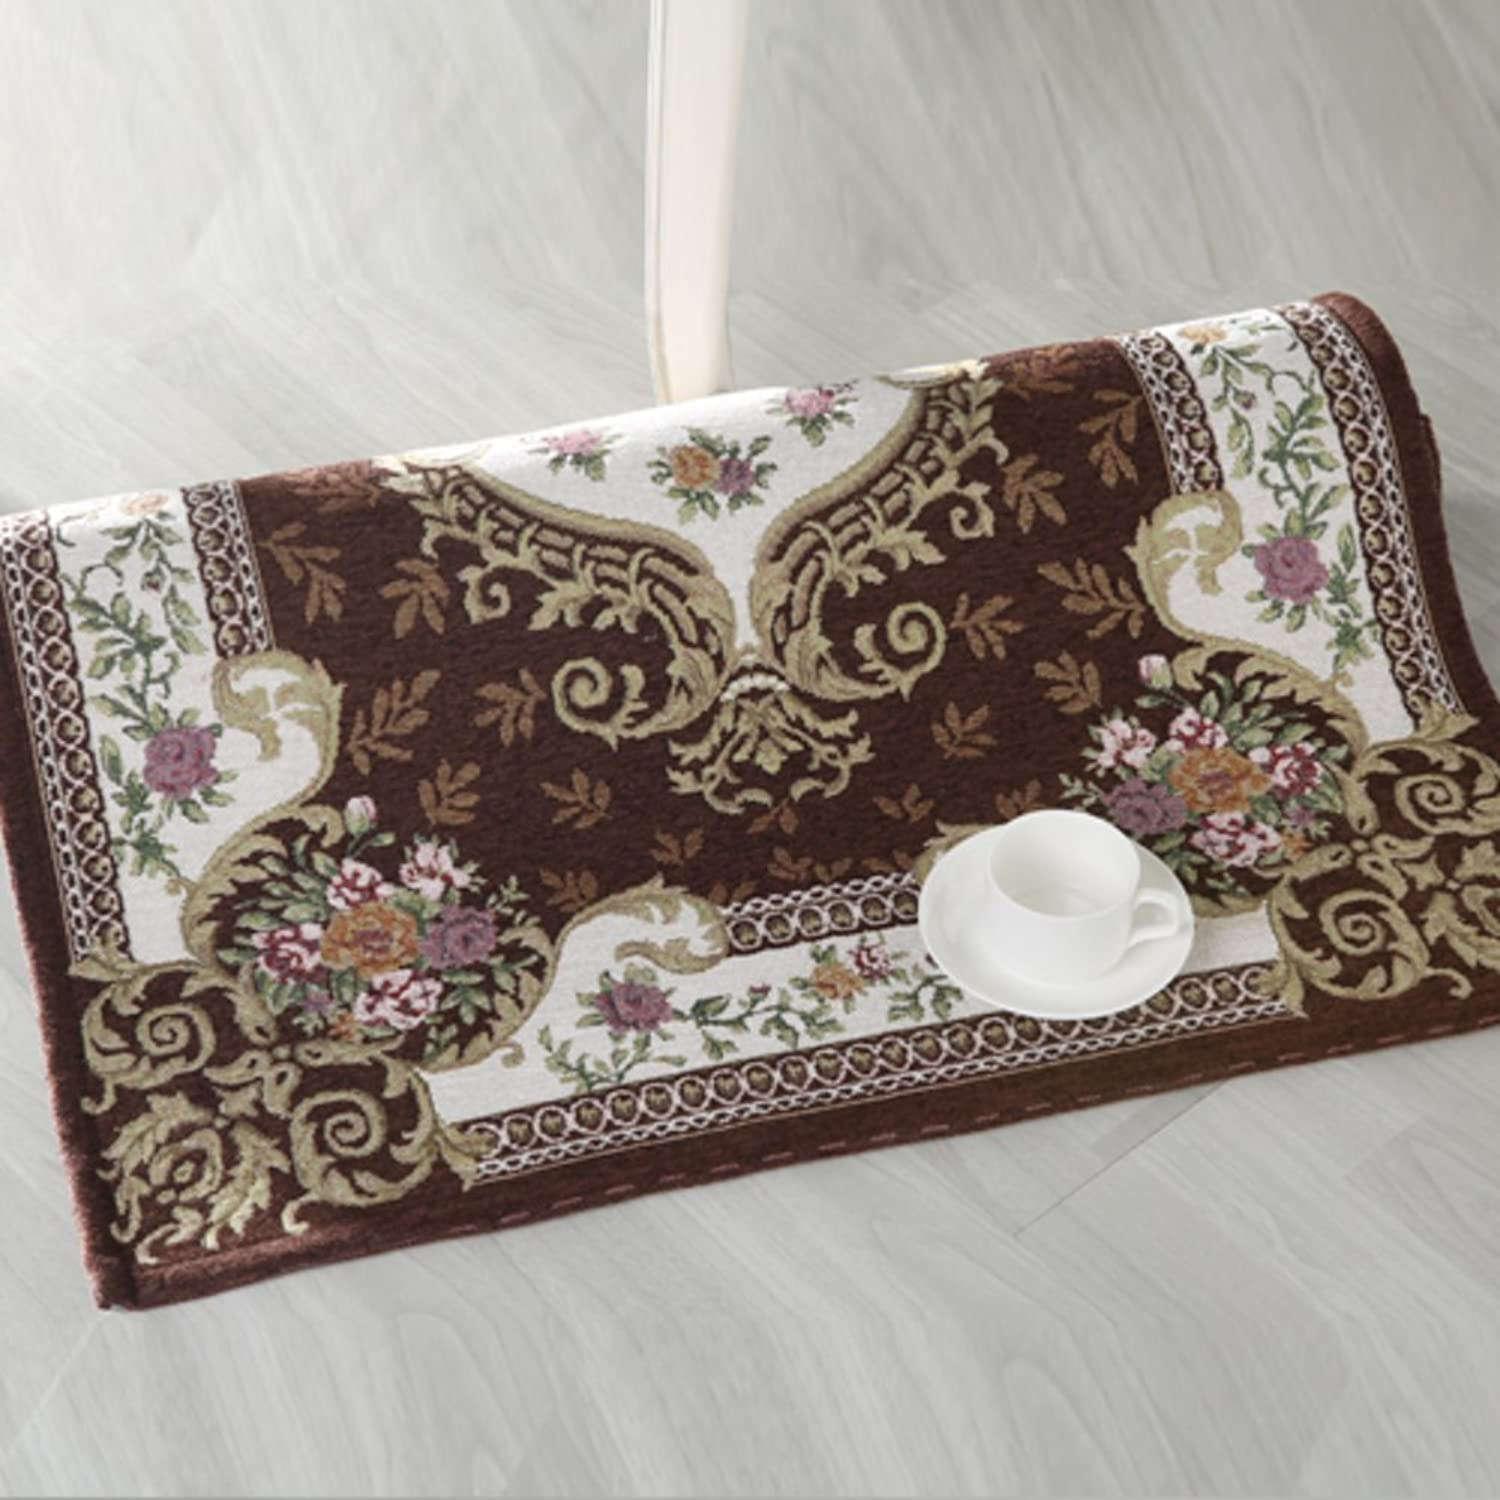 European Style,Jacquard Doormat Bedroom, Computer Chairs,Basket,Chair Pad Study,Table Mat-B 120x120cm(47x47inch)